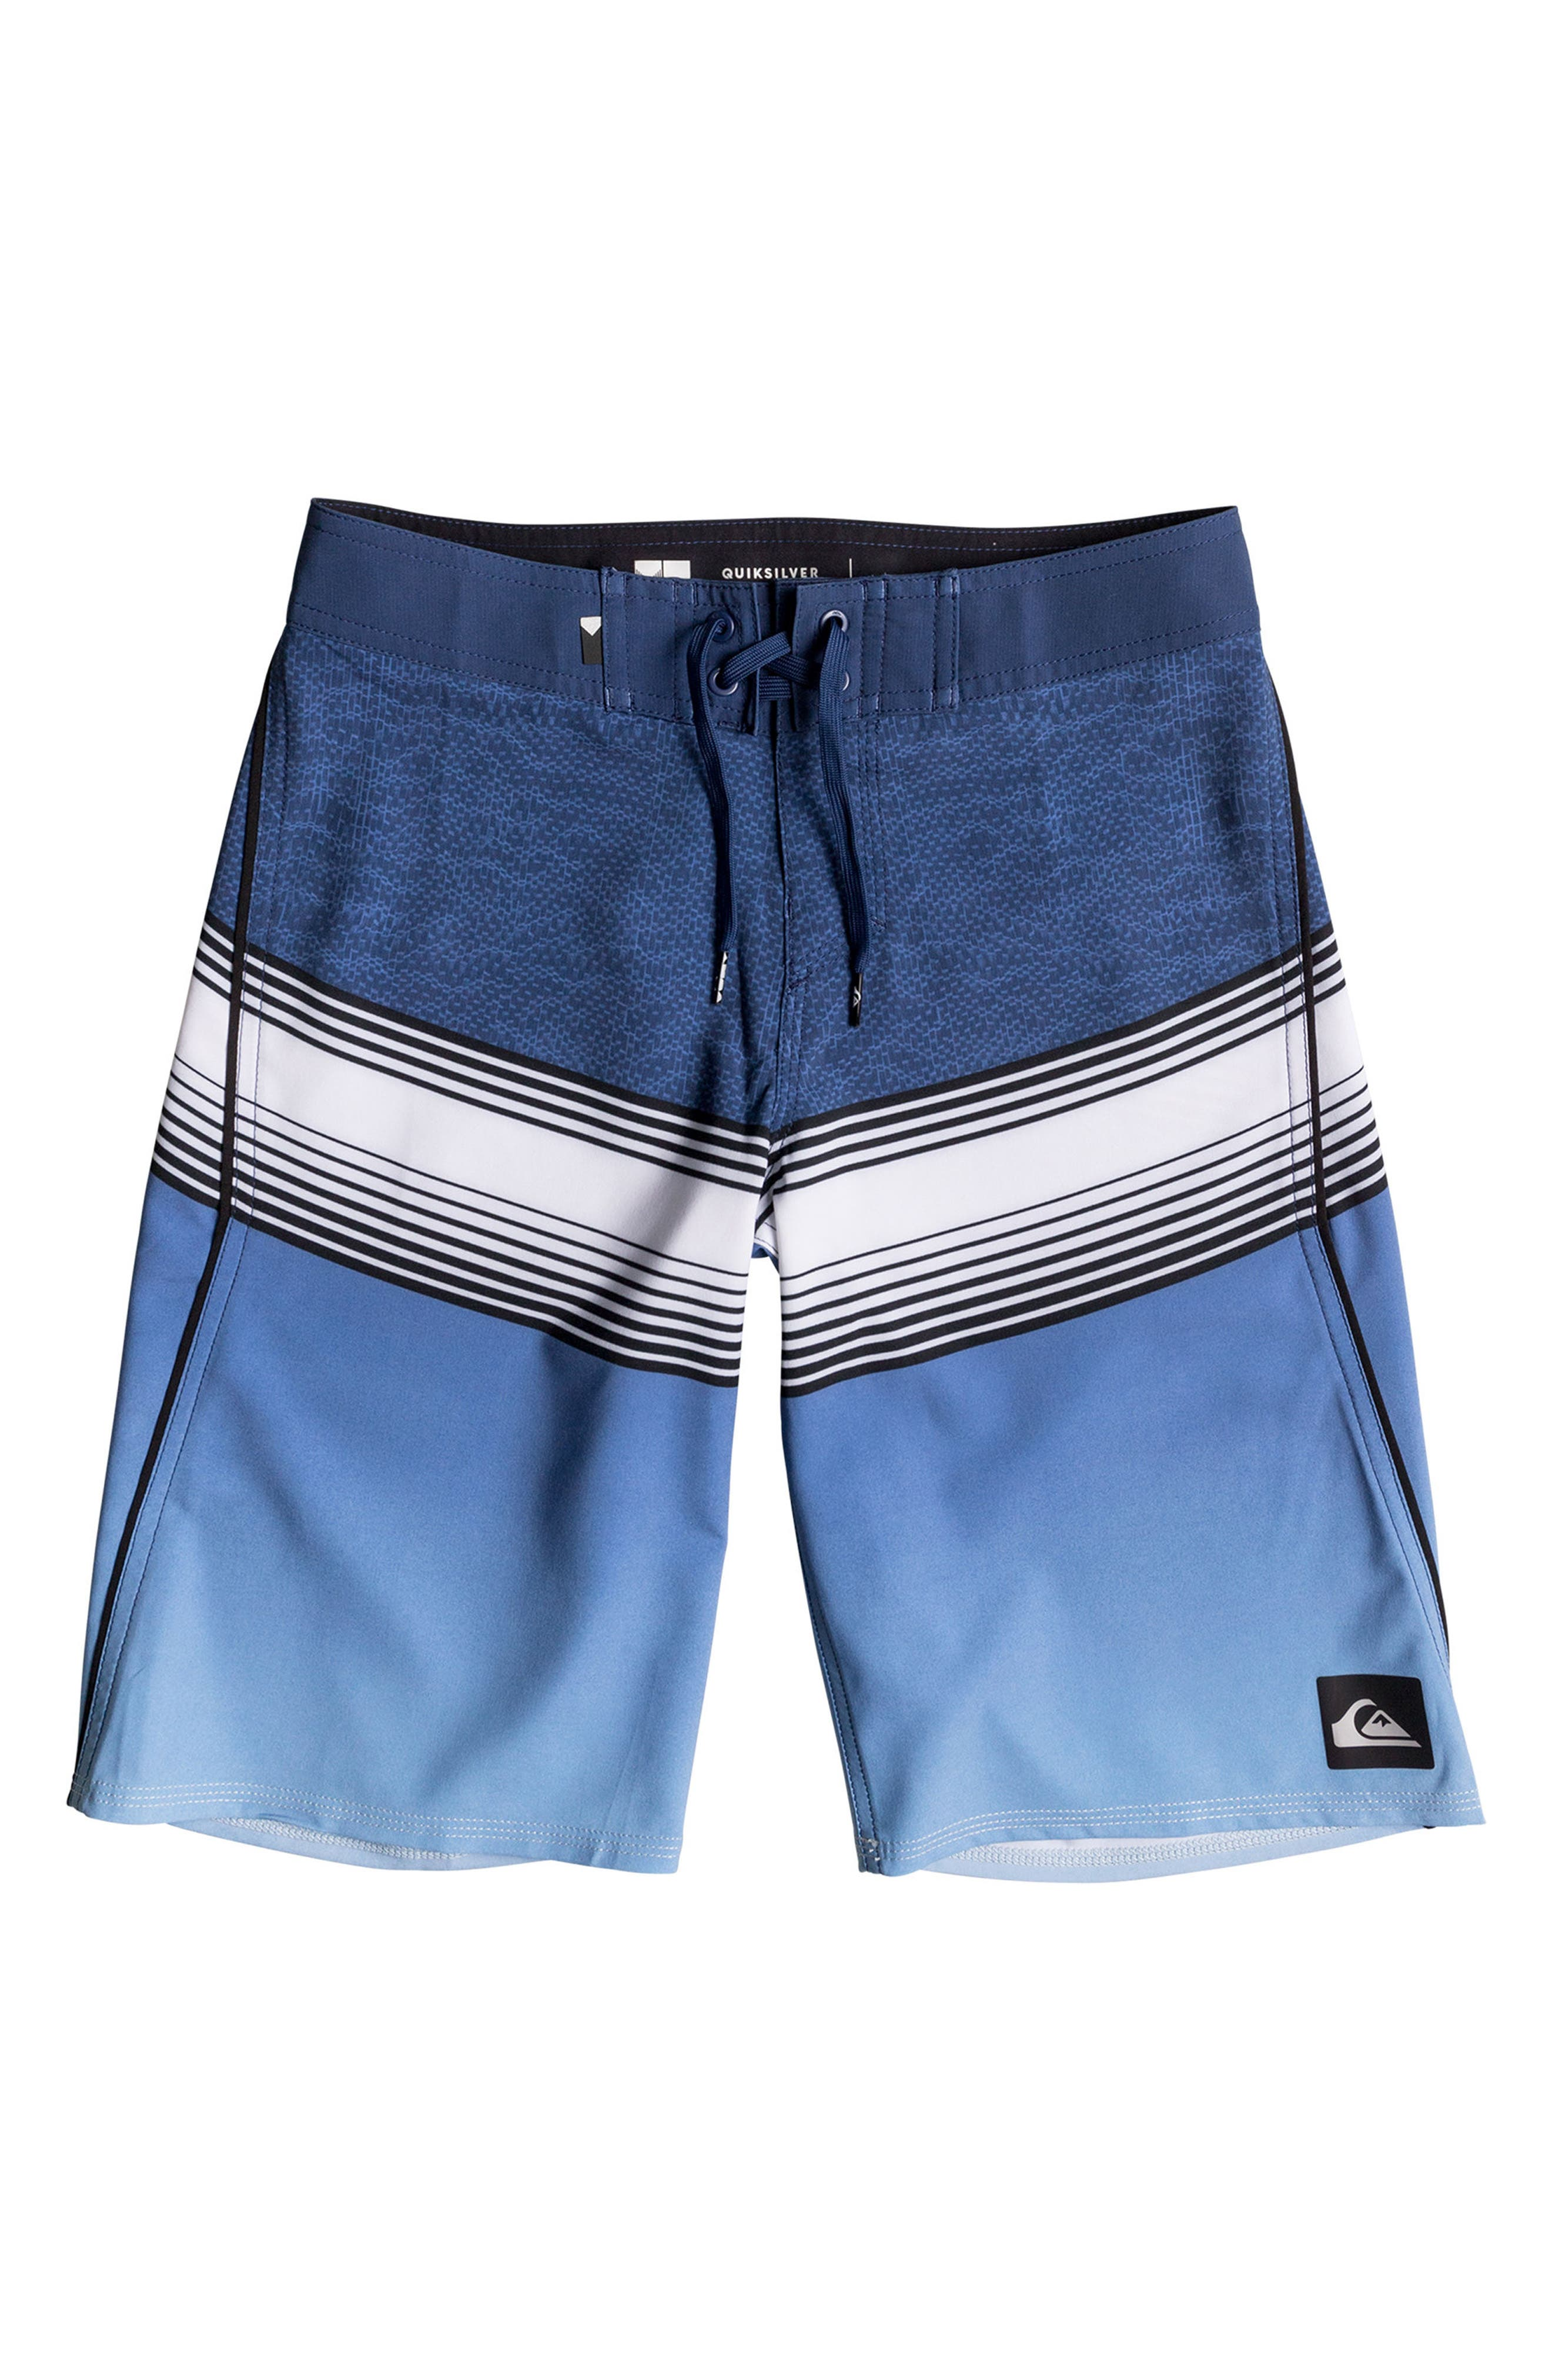 Division Fade Board Shorts,                             Main thumbnail 1, color,                             Estate Blue